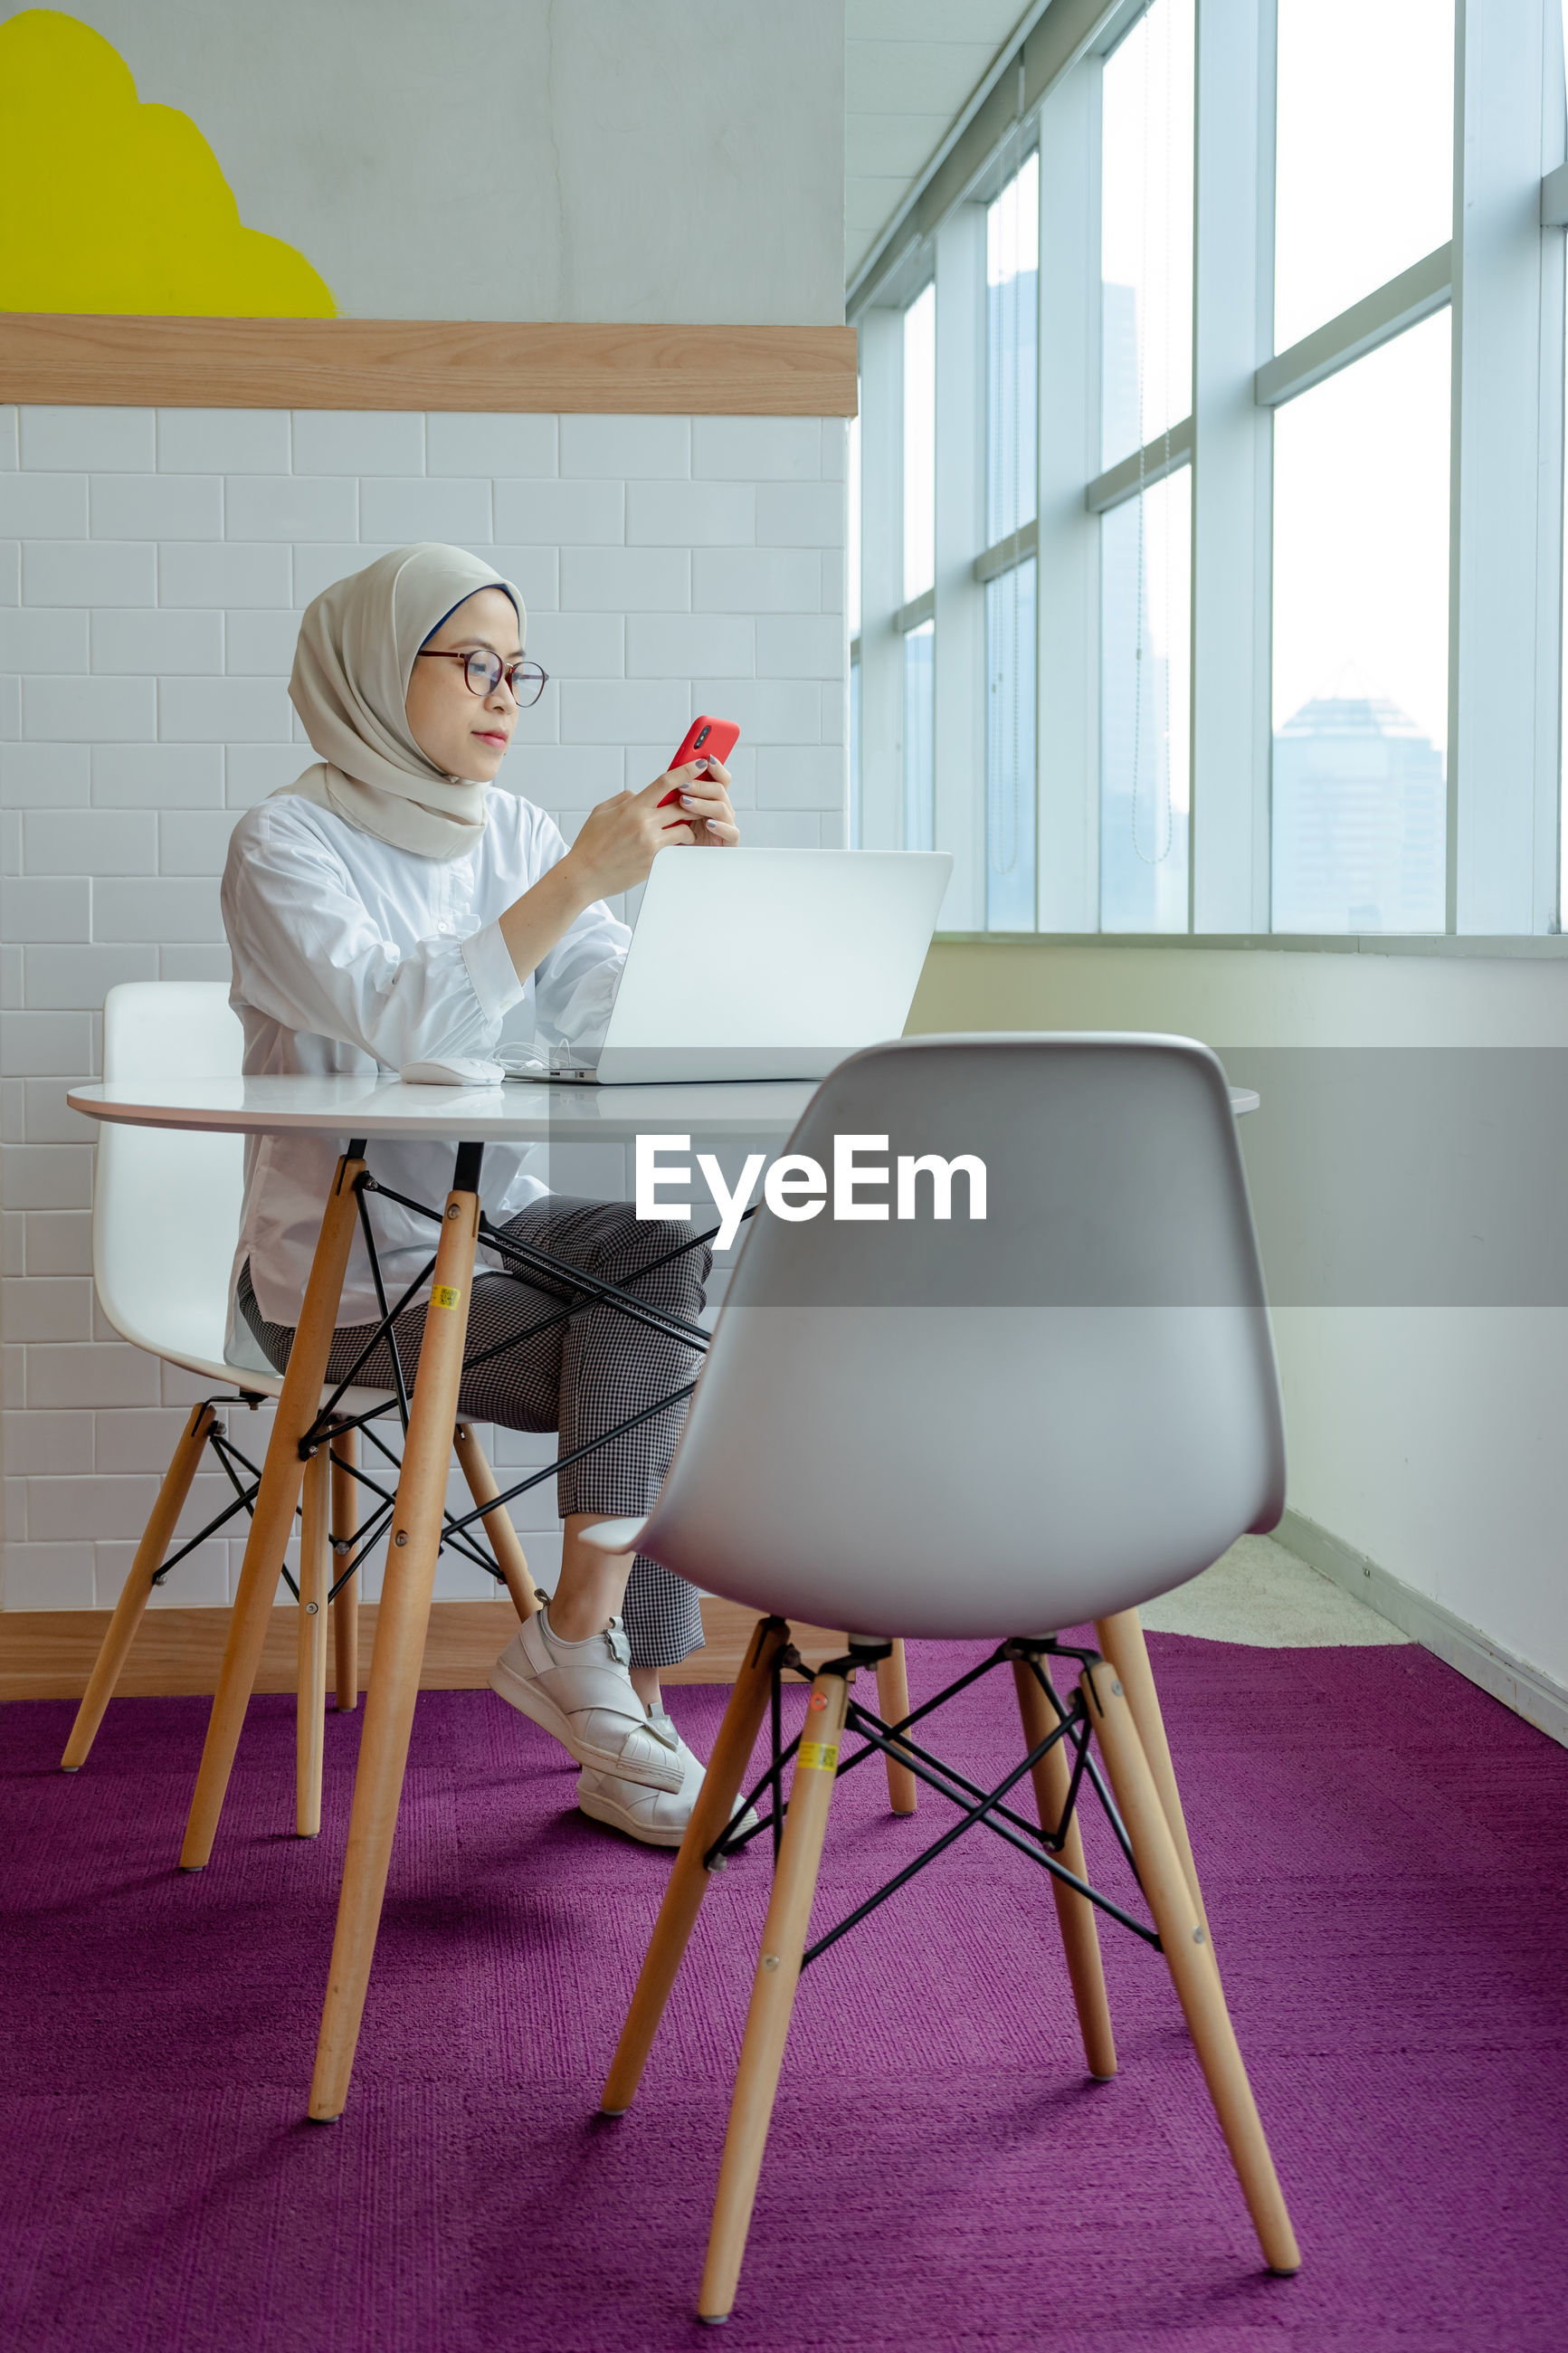 WOMAN USING PHONE WHILE SITTING ON CHAIR IN OFFICE